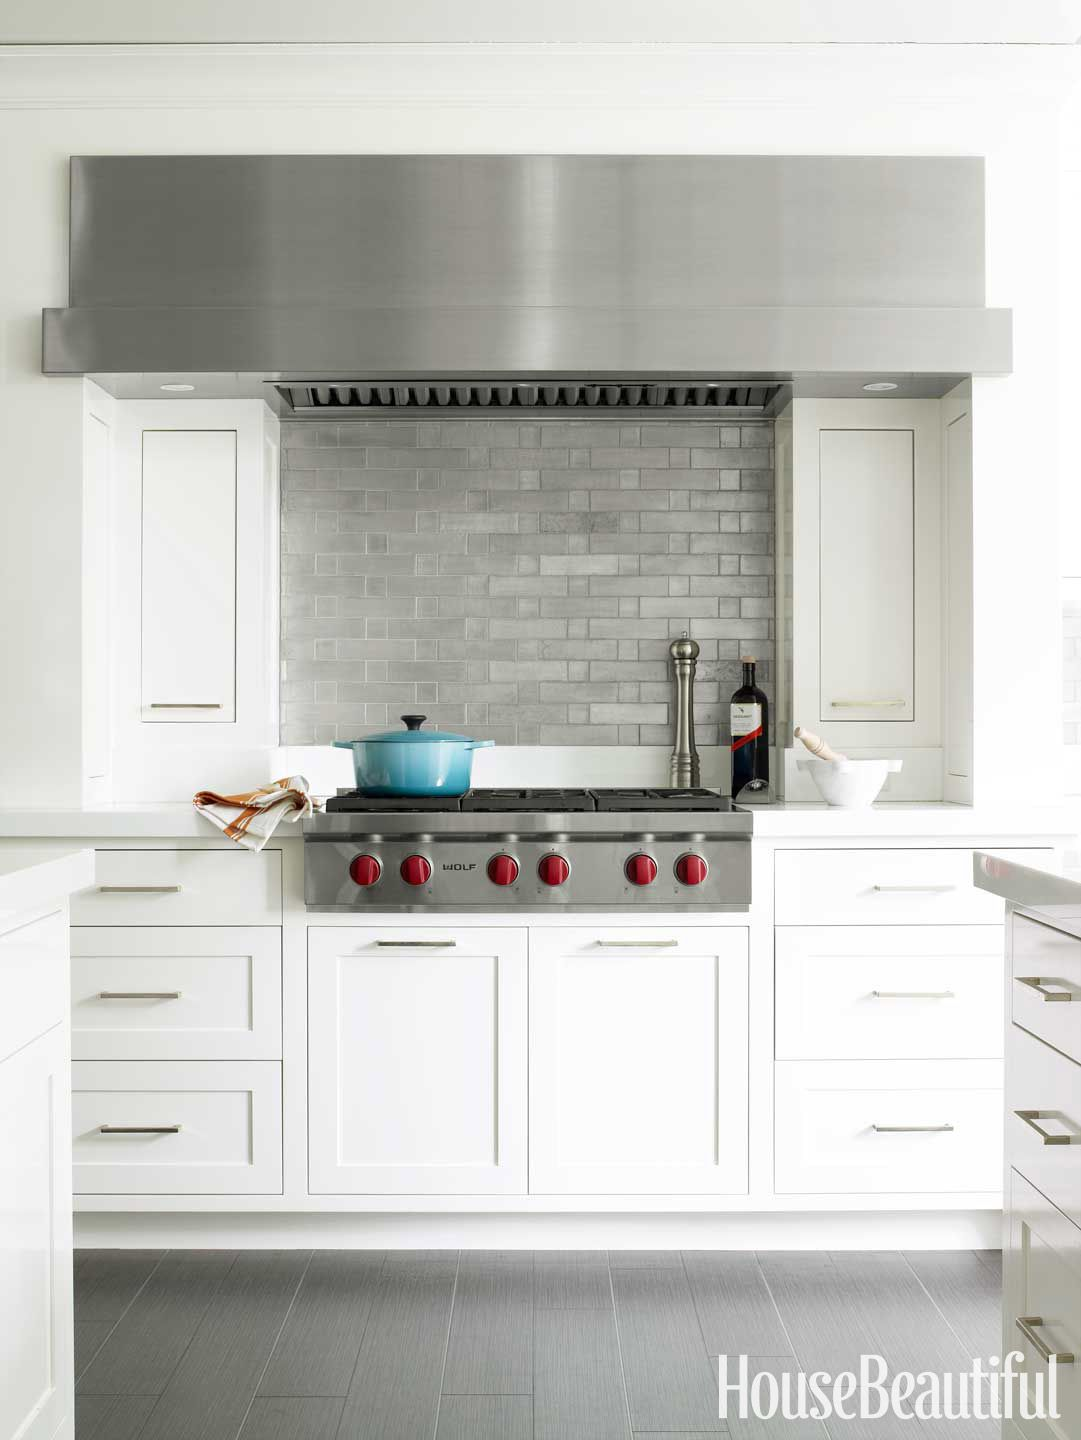 53 best kitchen backsplash ideas tile designs for kitchen 53 best kitchen backsplash ideas tile designs for kitchen backsplashes dailygadgetfo Image collections